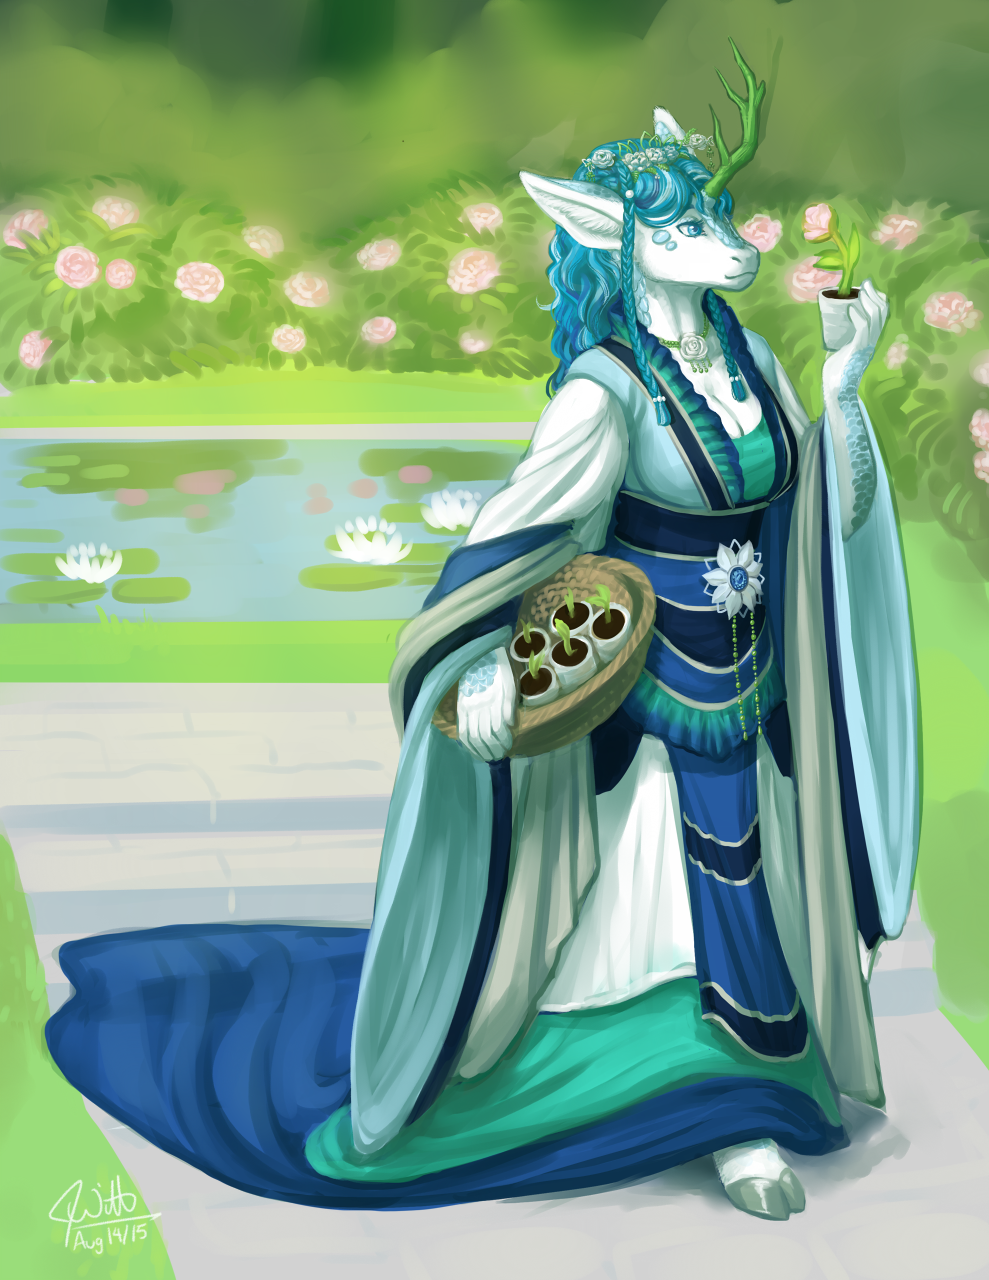 Lady Masami Tends to Hir Gardens